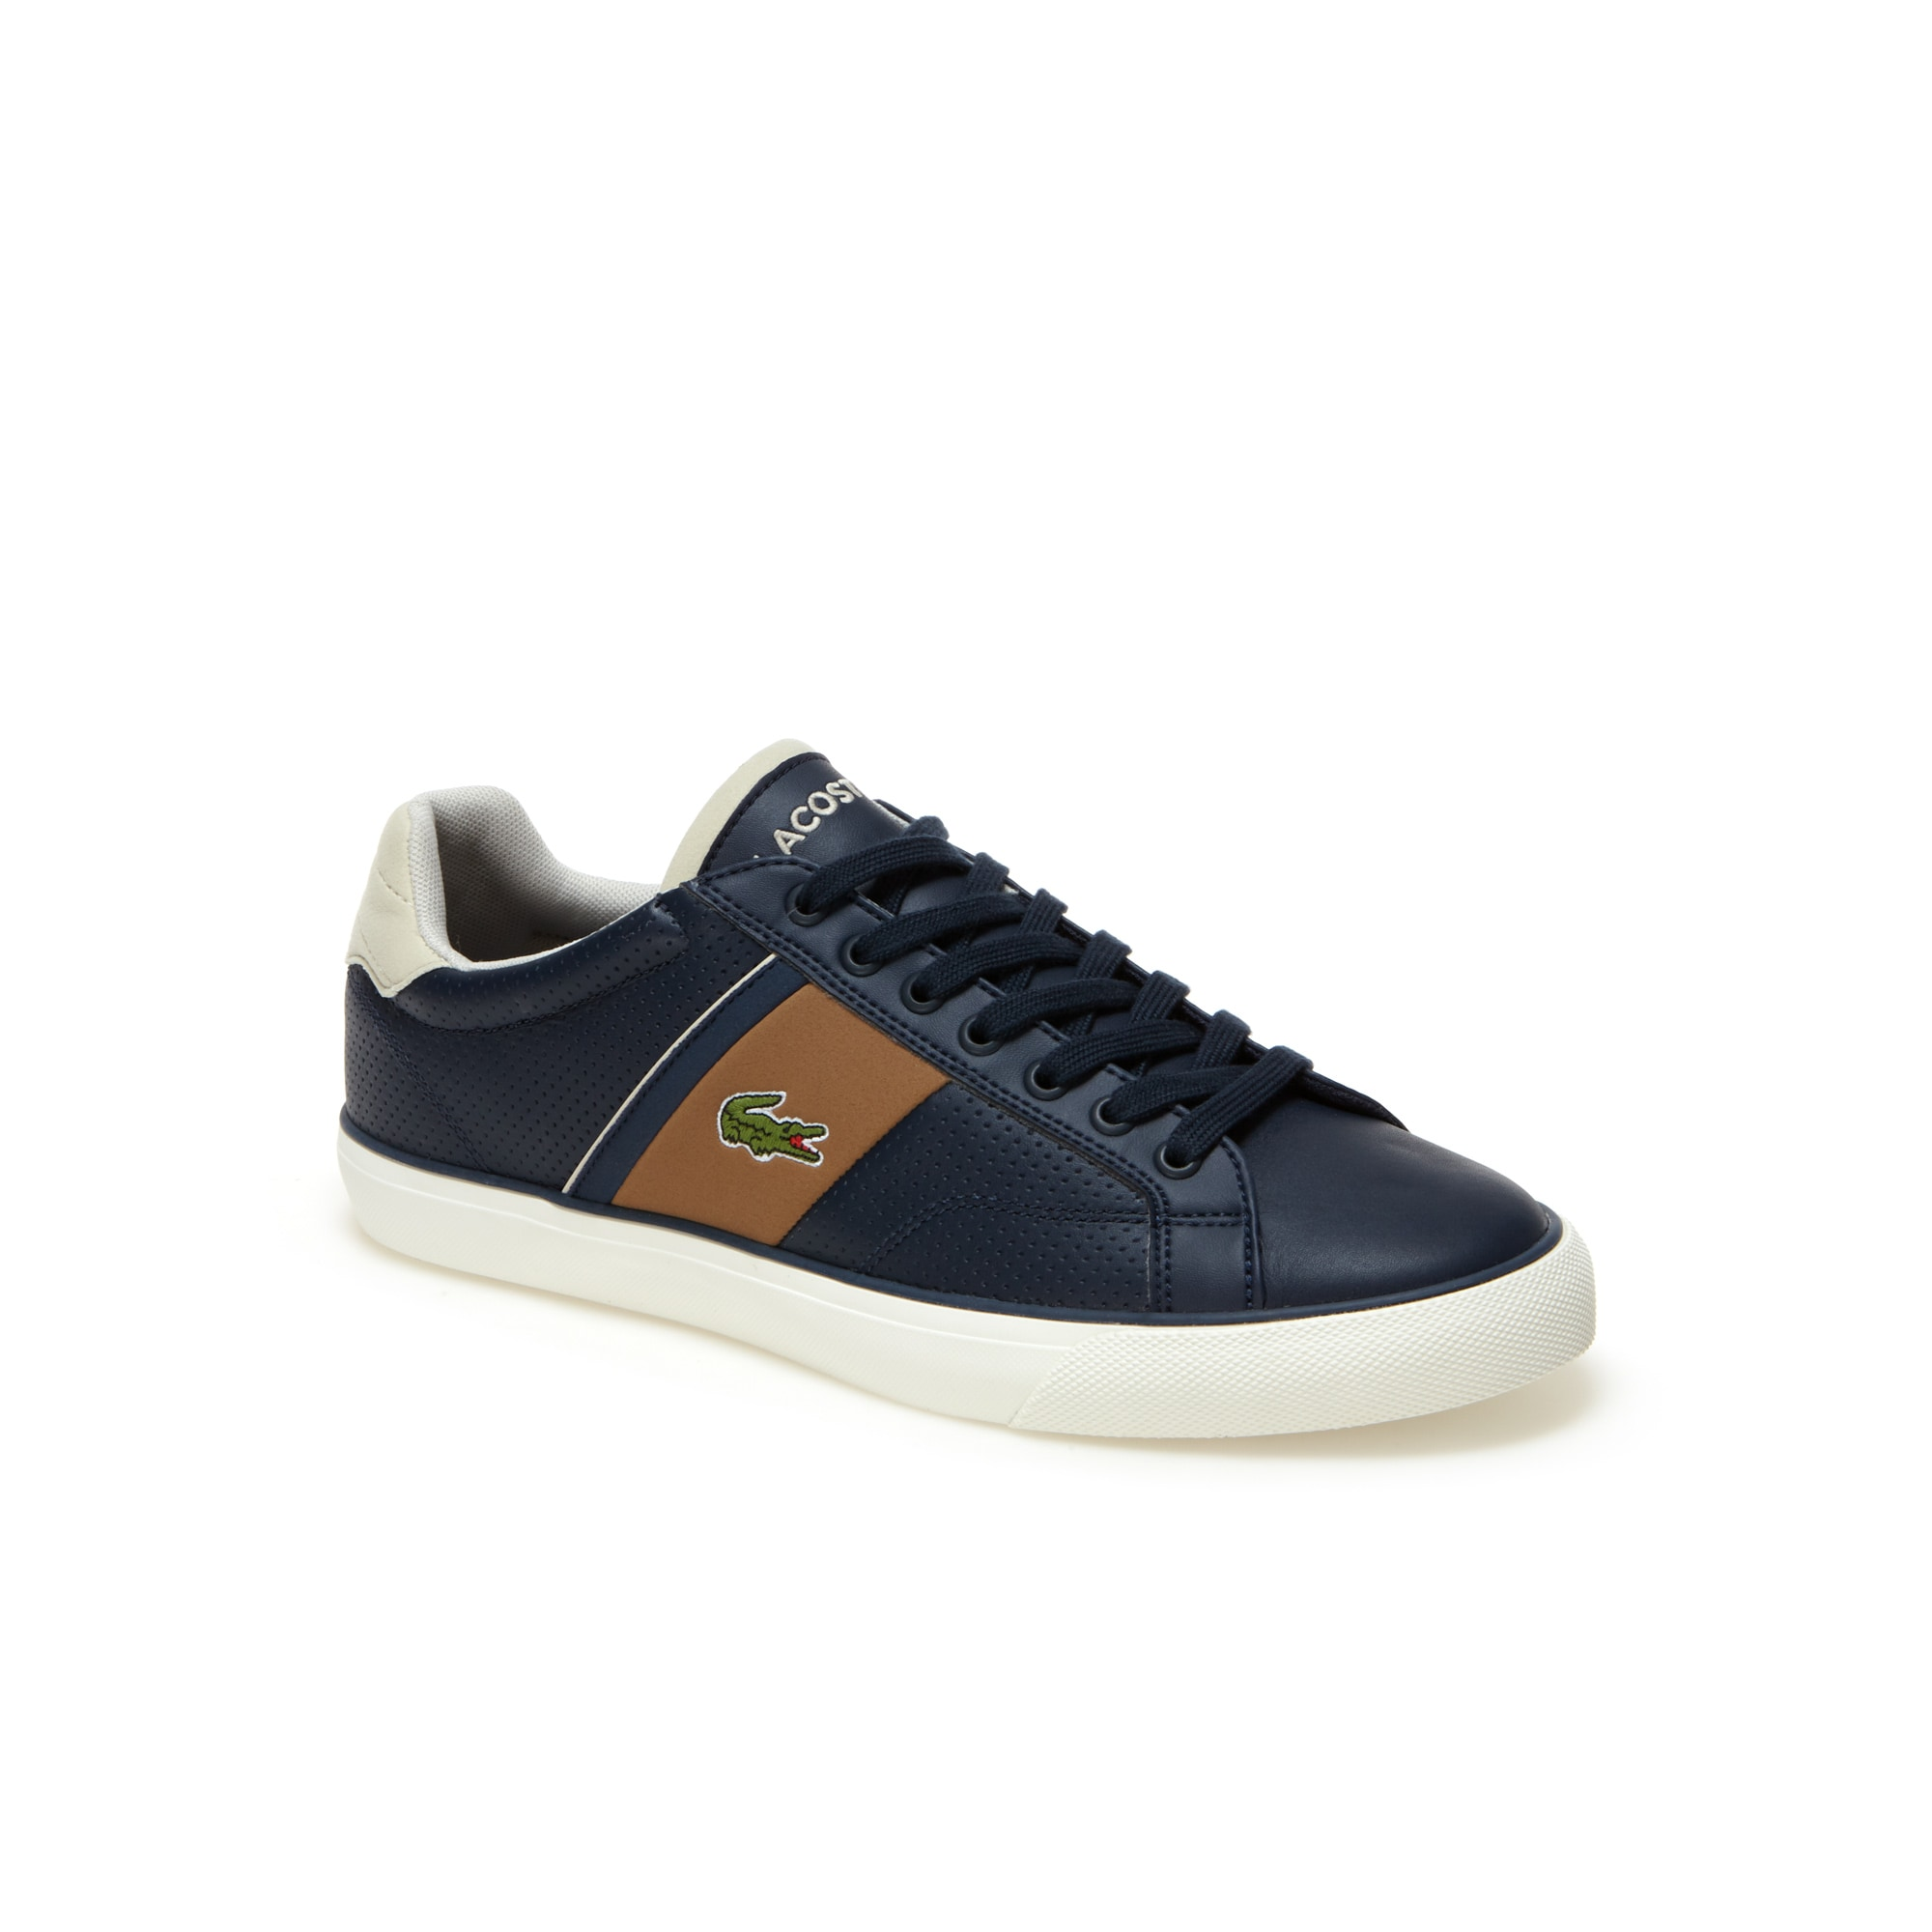 Men's Fairlead Leather Sneakers